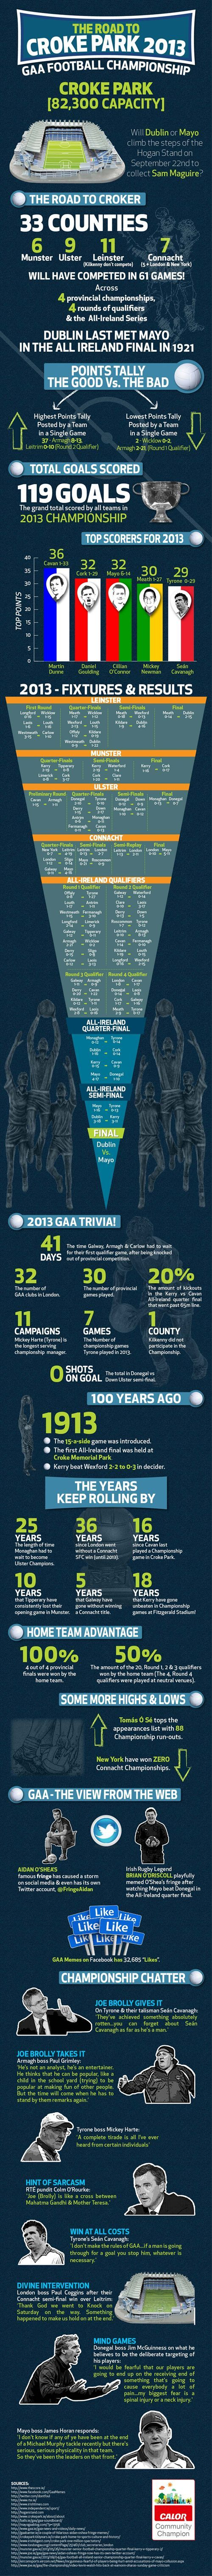 Infographics - The Road To Croke Park 2013: GAA Football Championship